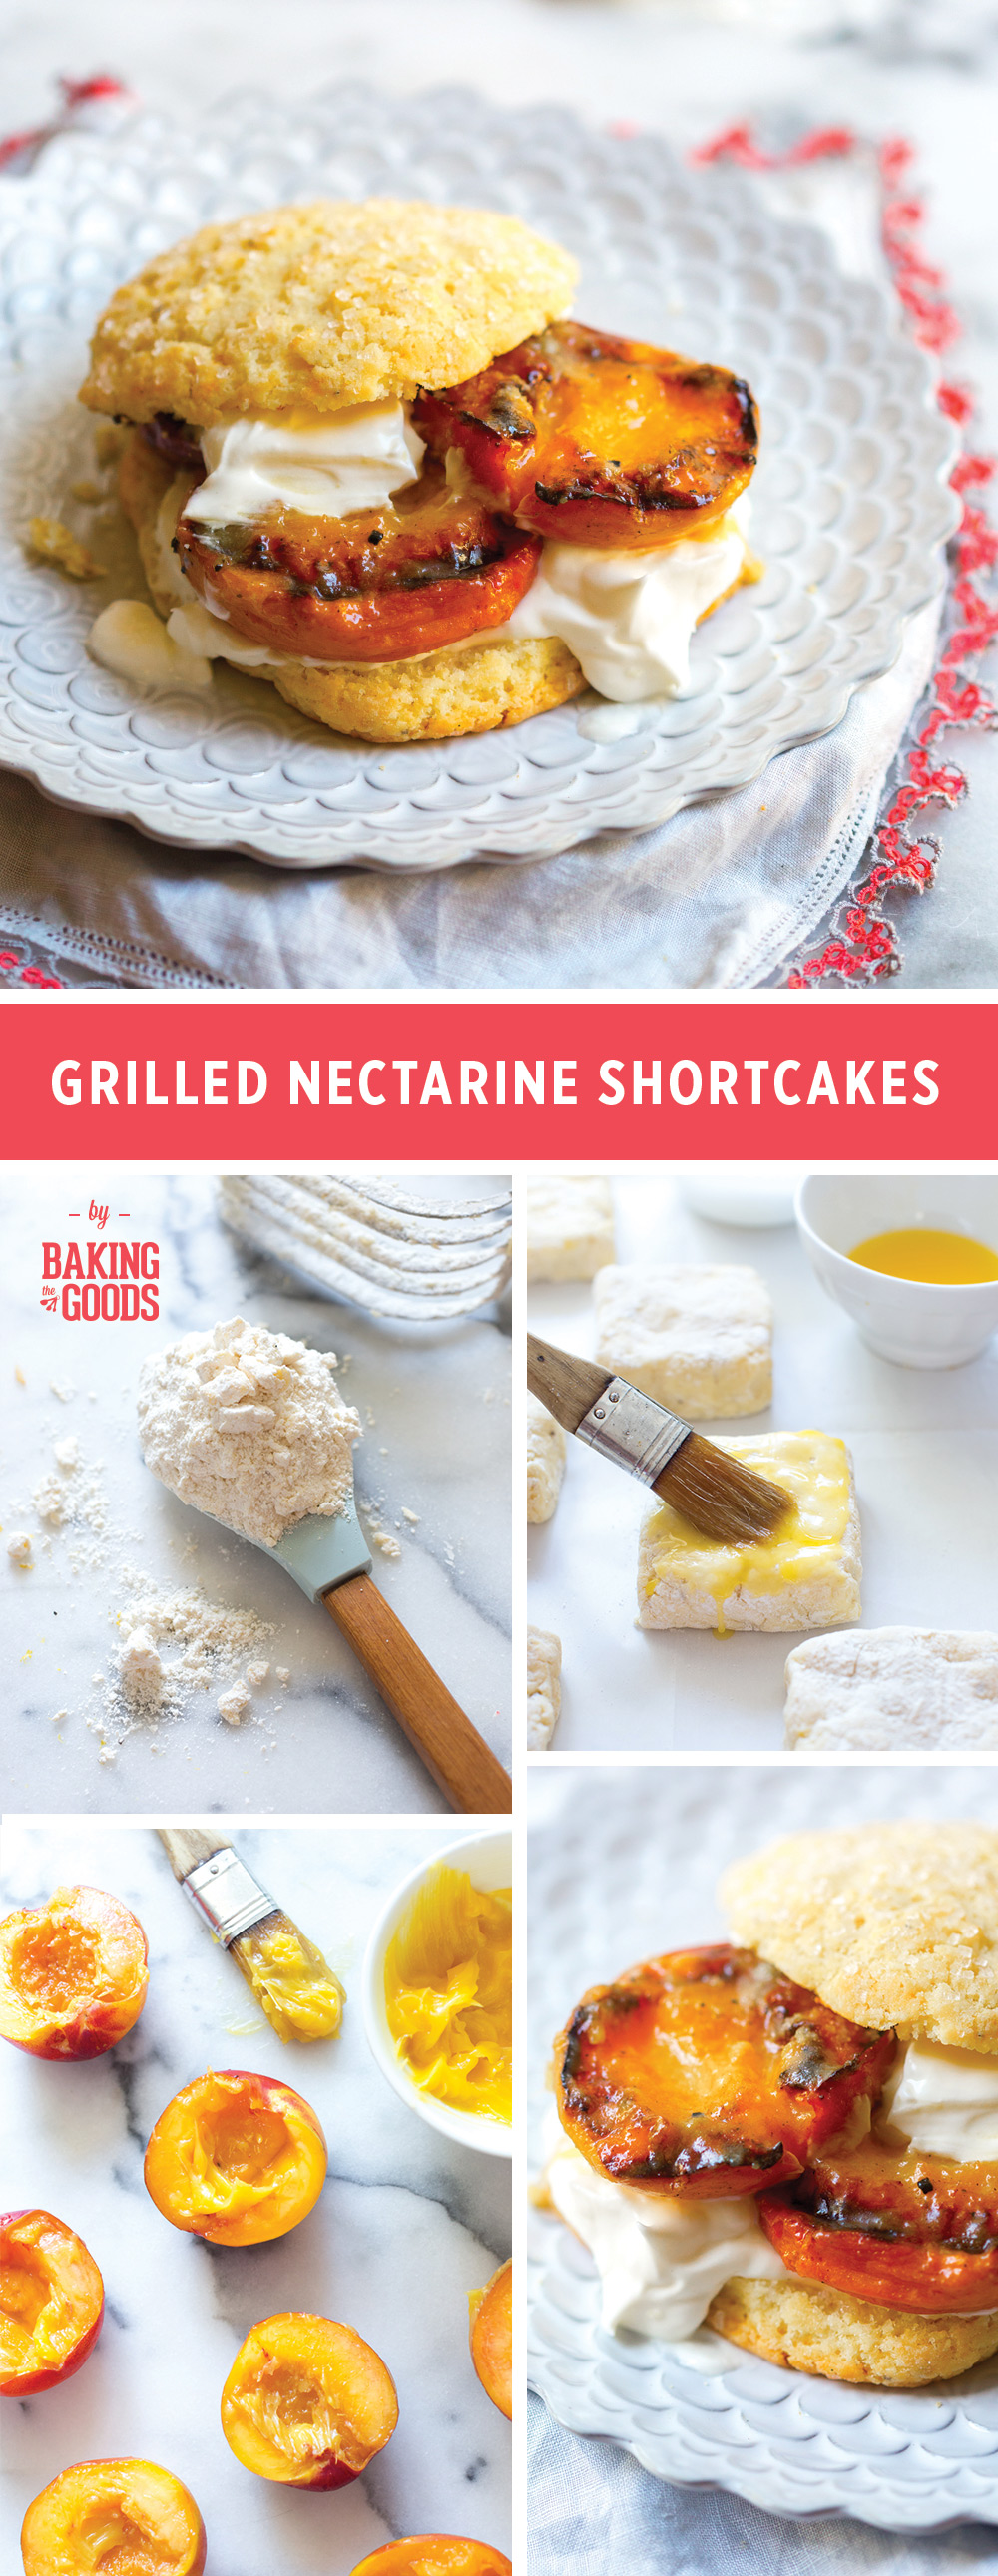 Grilled Nectarine Shortcakes by Baking The Goods.